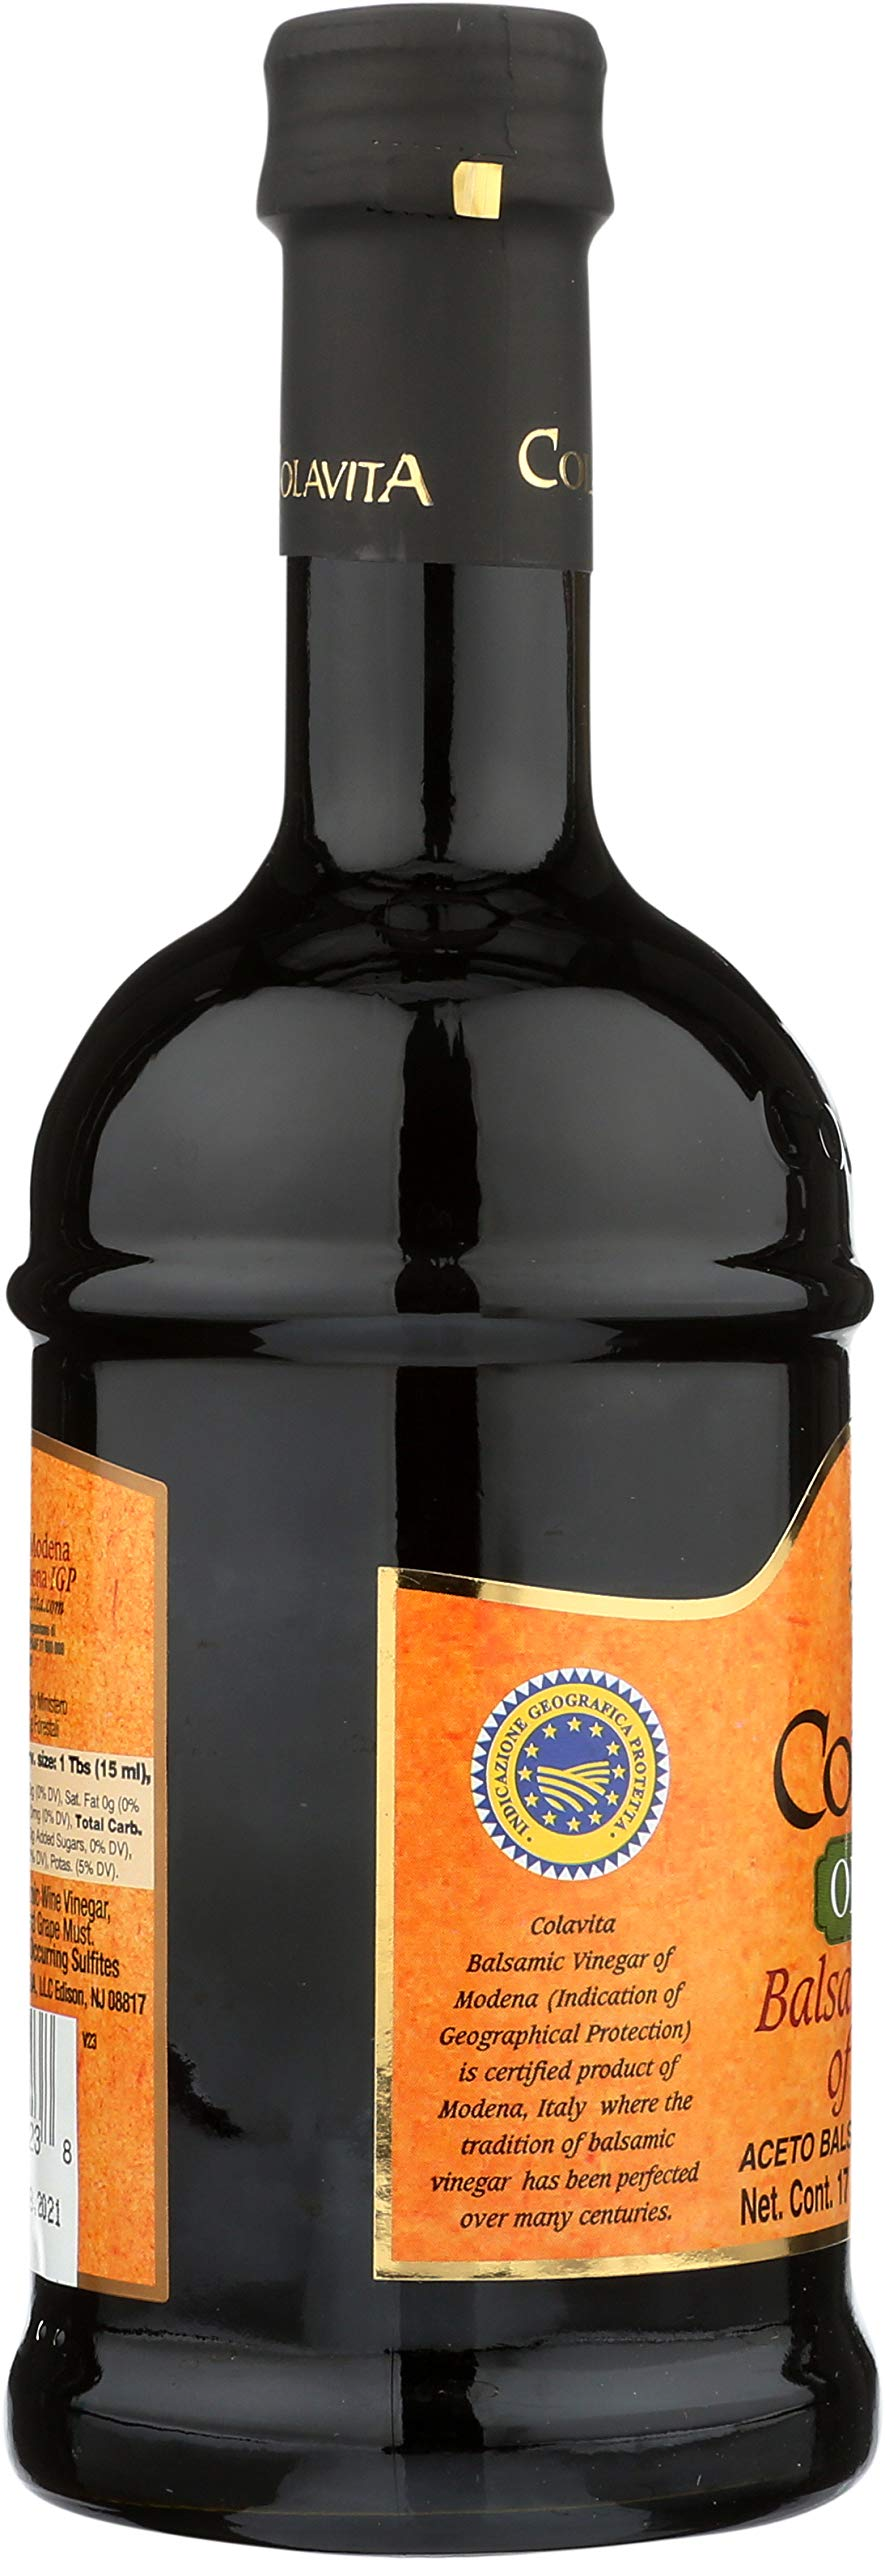 Colavita Vinegar, 5-Ounce Bottles (Pack of 16) 9 Special 5oz bottle Colavita Balsamic Vinegar. Enhance your dishes with the fruity tones of Colavita Balsamic Vinegar. In addition to salad dressings try adding Balsamic Vinegar to slow-cooked foods like soup or beans or use as a marinade for meat.